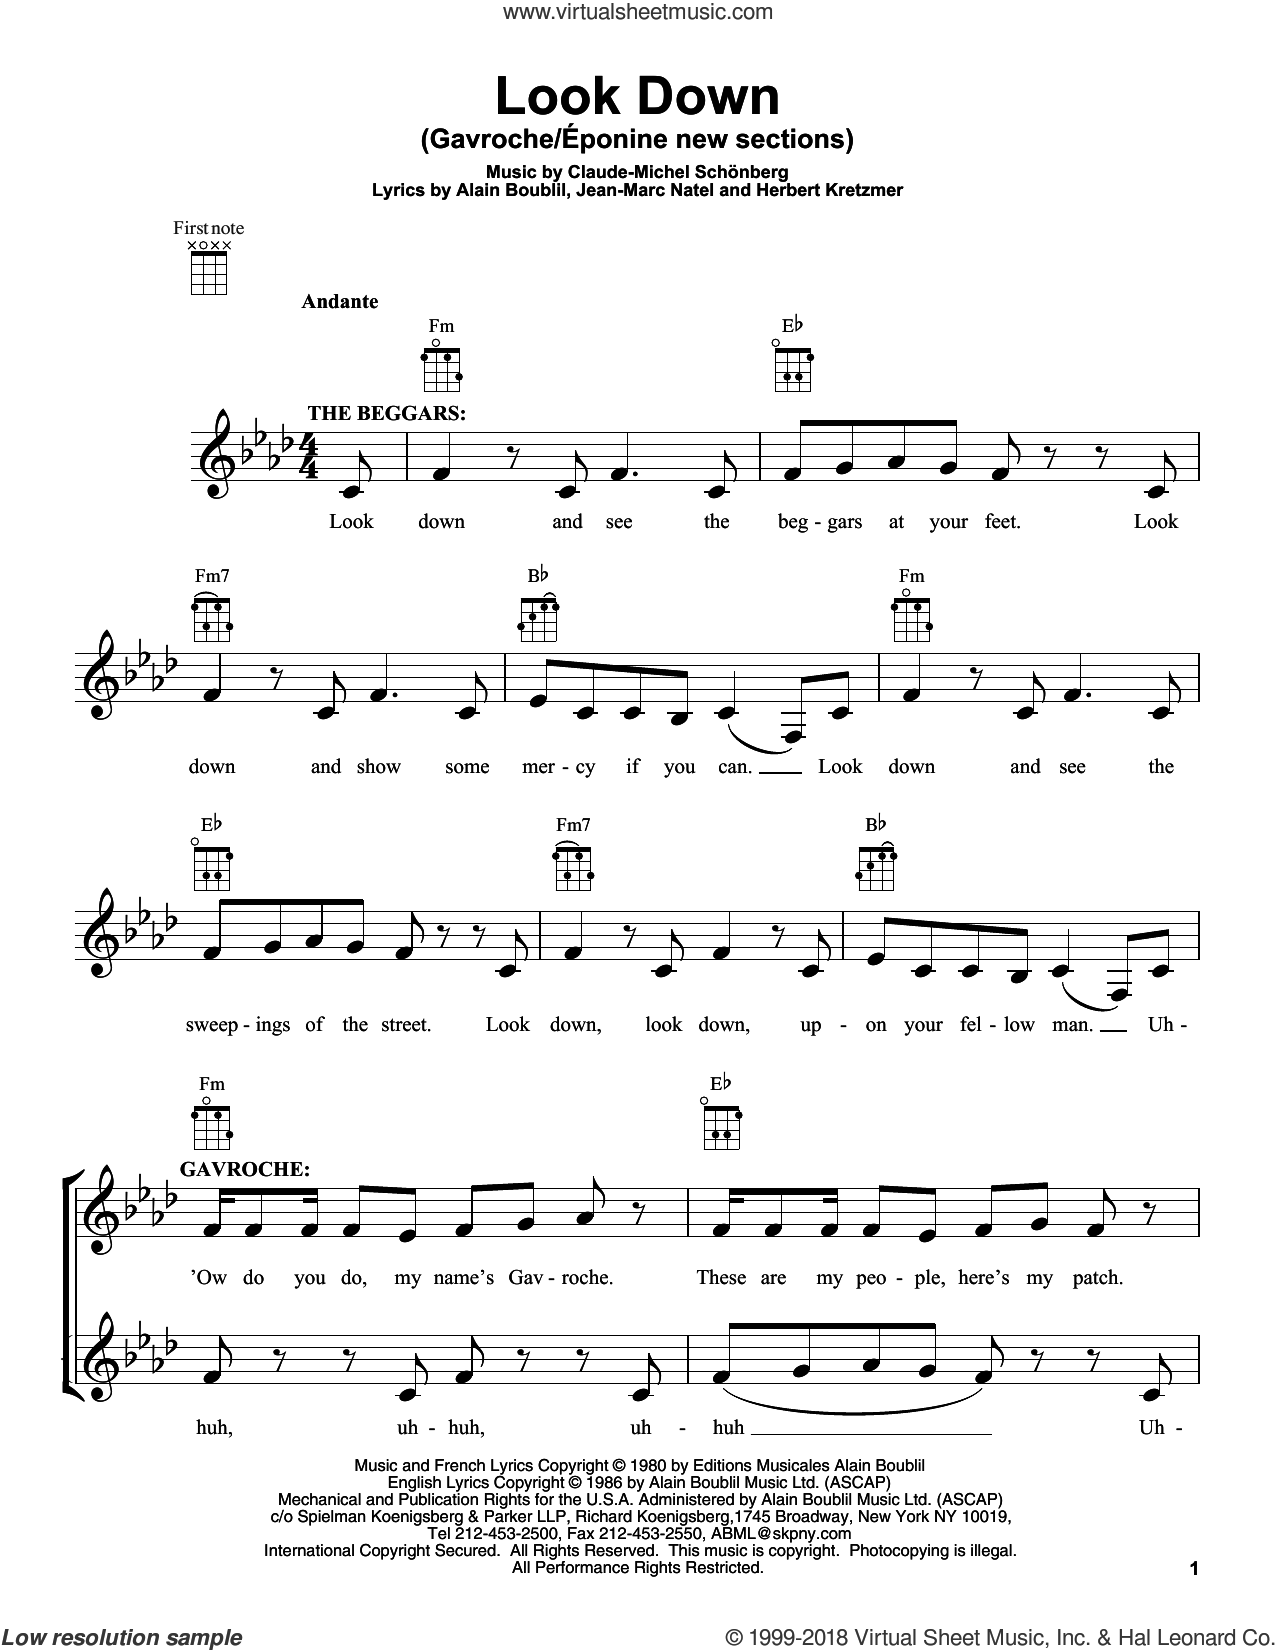 Look Down (Gavroche) sheet music for ukulele by Claude-Michel Schonberg, Alain Boublil and Les Miserables (Movie), intermediate ukulele. Score Image Preview.